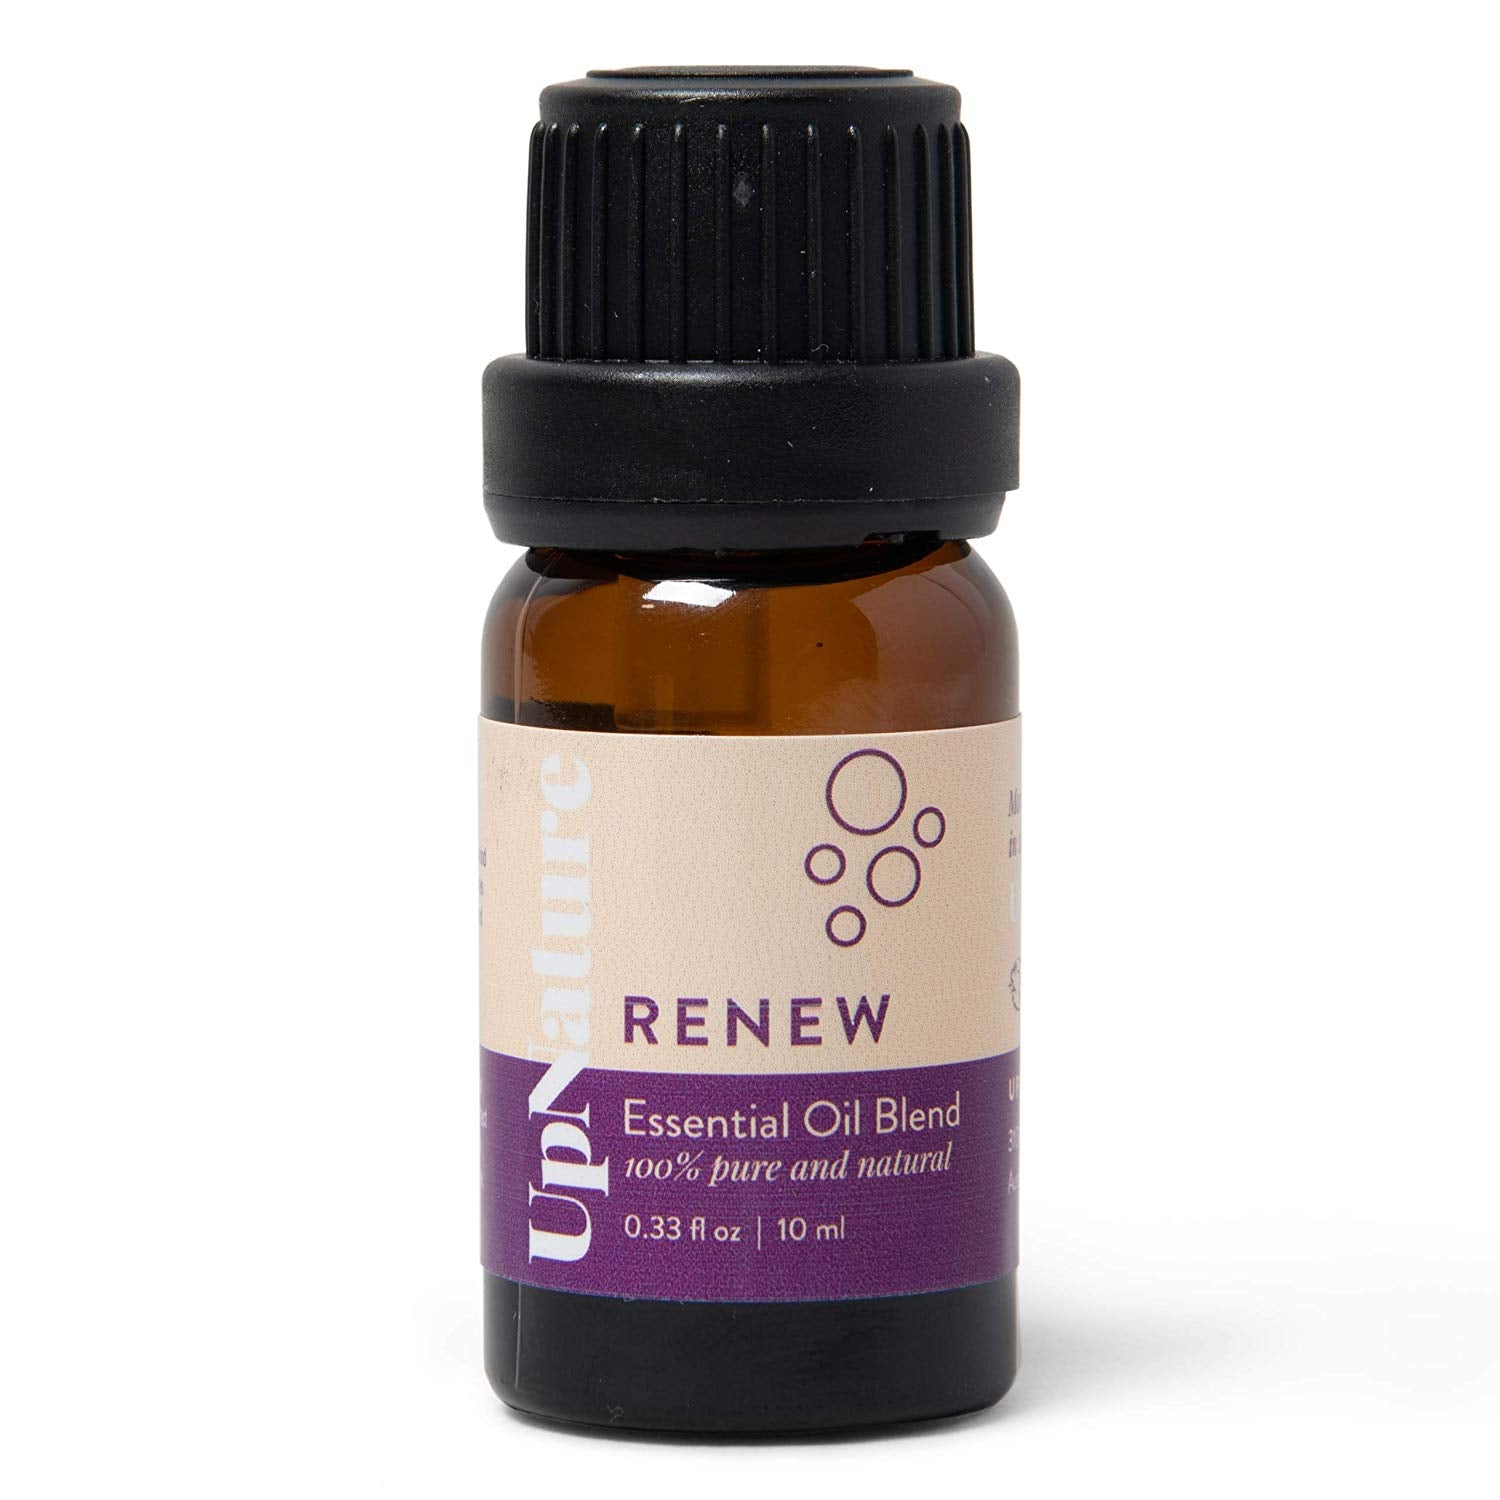 Renew Essential Oil Blend - Skin & Nail Fungus Treatment